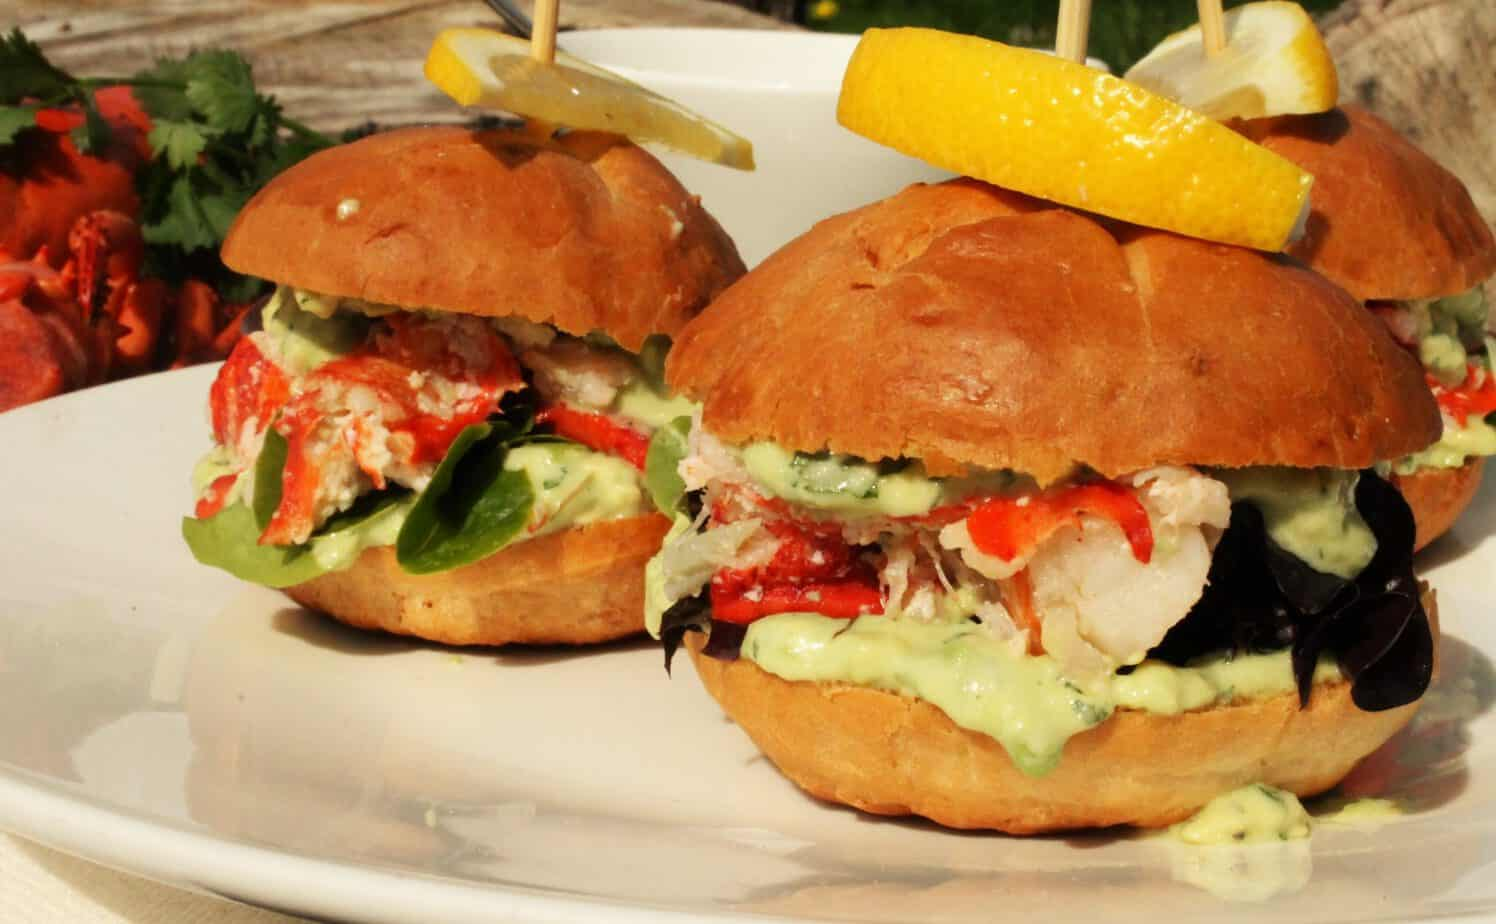 A new take on the Lobster Roll. Fresh Pei Lobster with a Cilantro and Avocado Mayo..in Slider form!